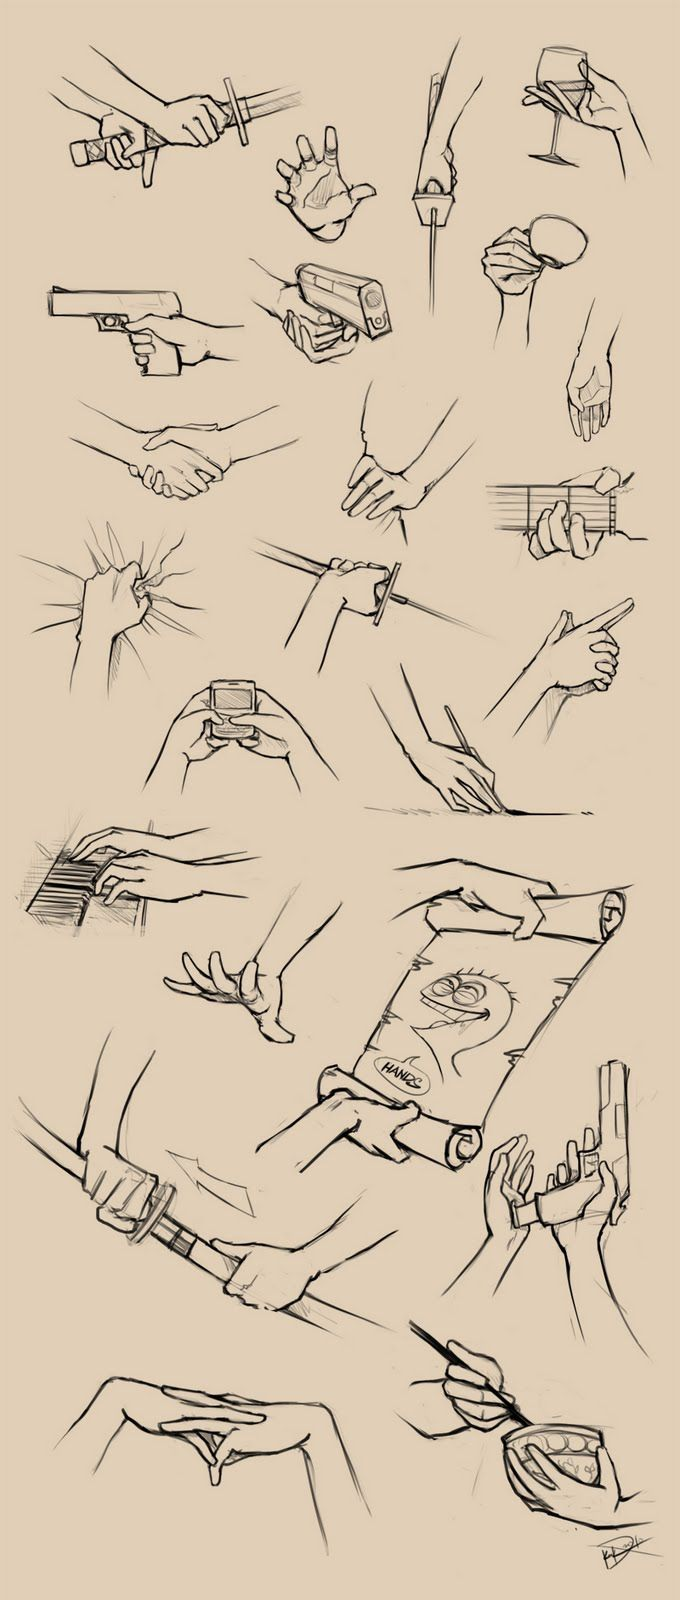 680x1600 82 Best Pose Images On Drawing Tips